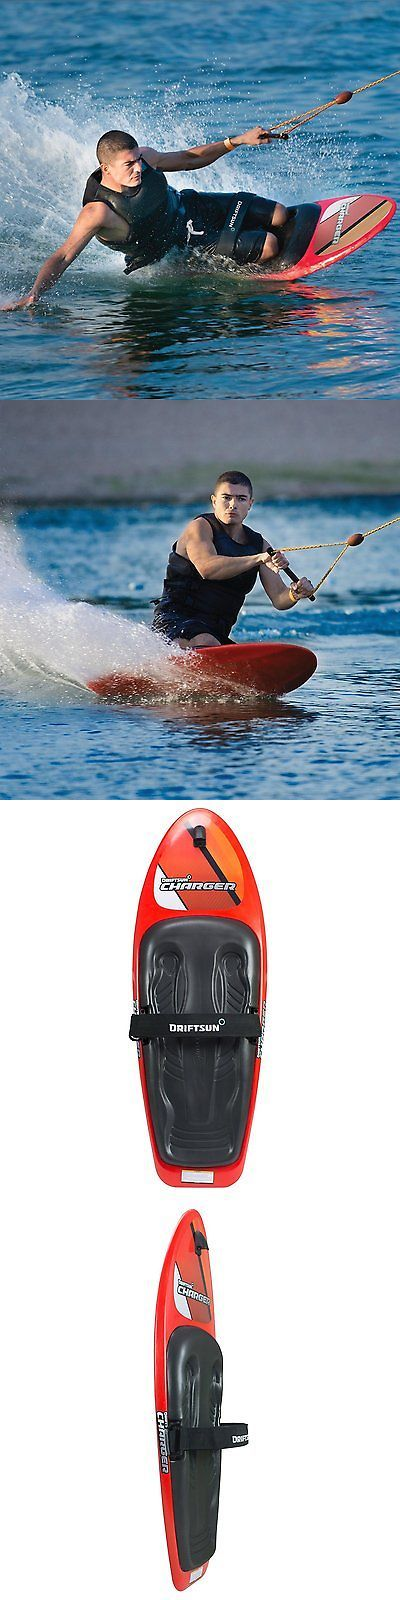 Kneeboards 159163: Skiing Sport Accessories Charger Kneeboard Water Sports Outdoor Sporting Goods -> BUY IT NOW ONLY: $182.77 on eBay!